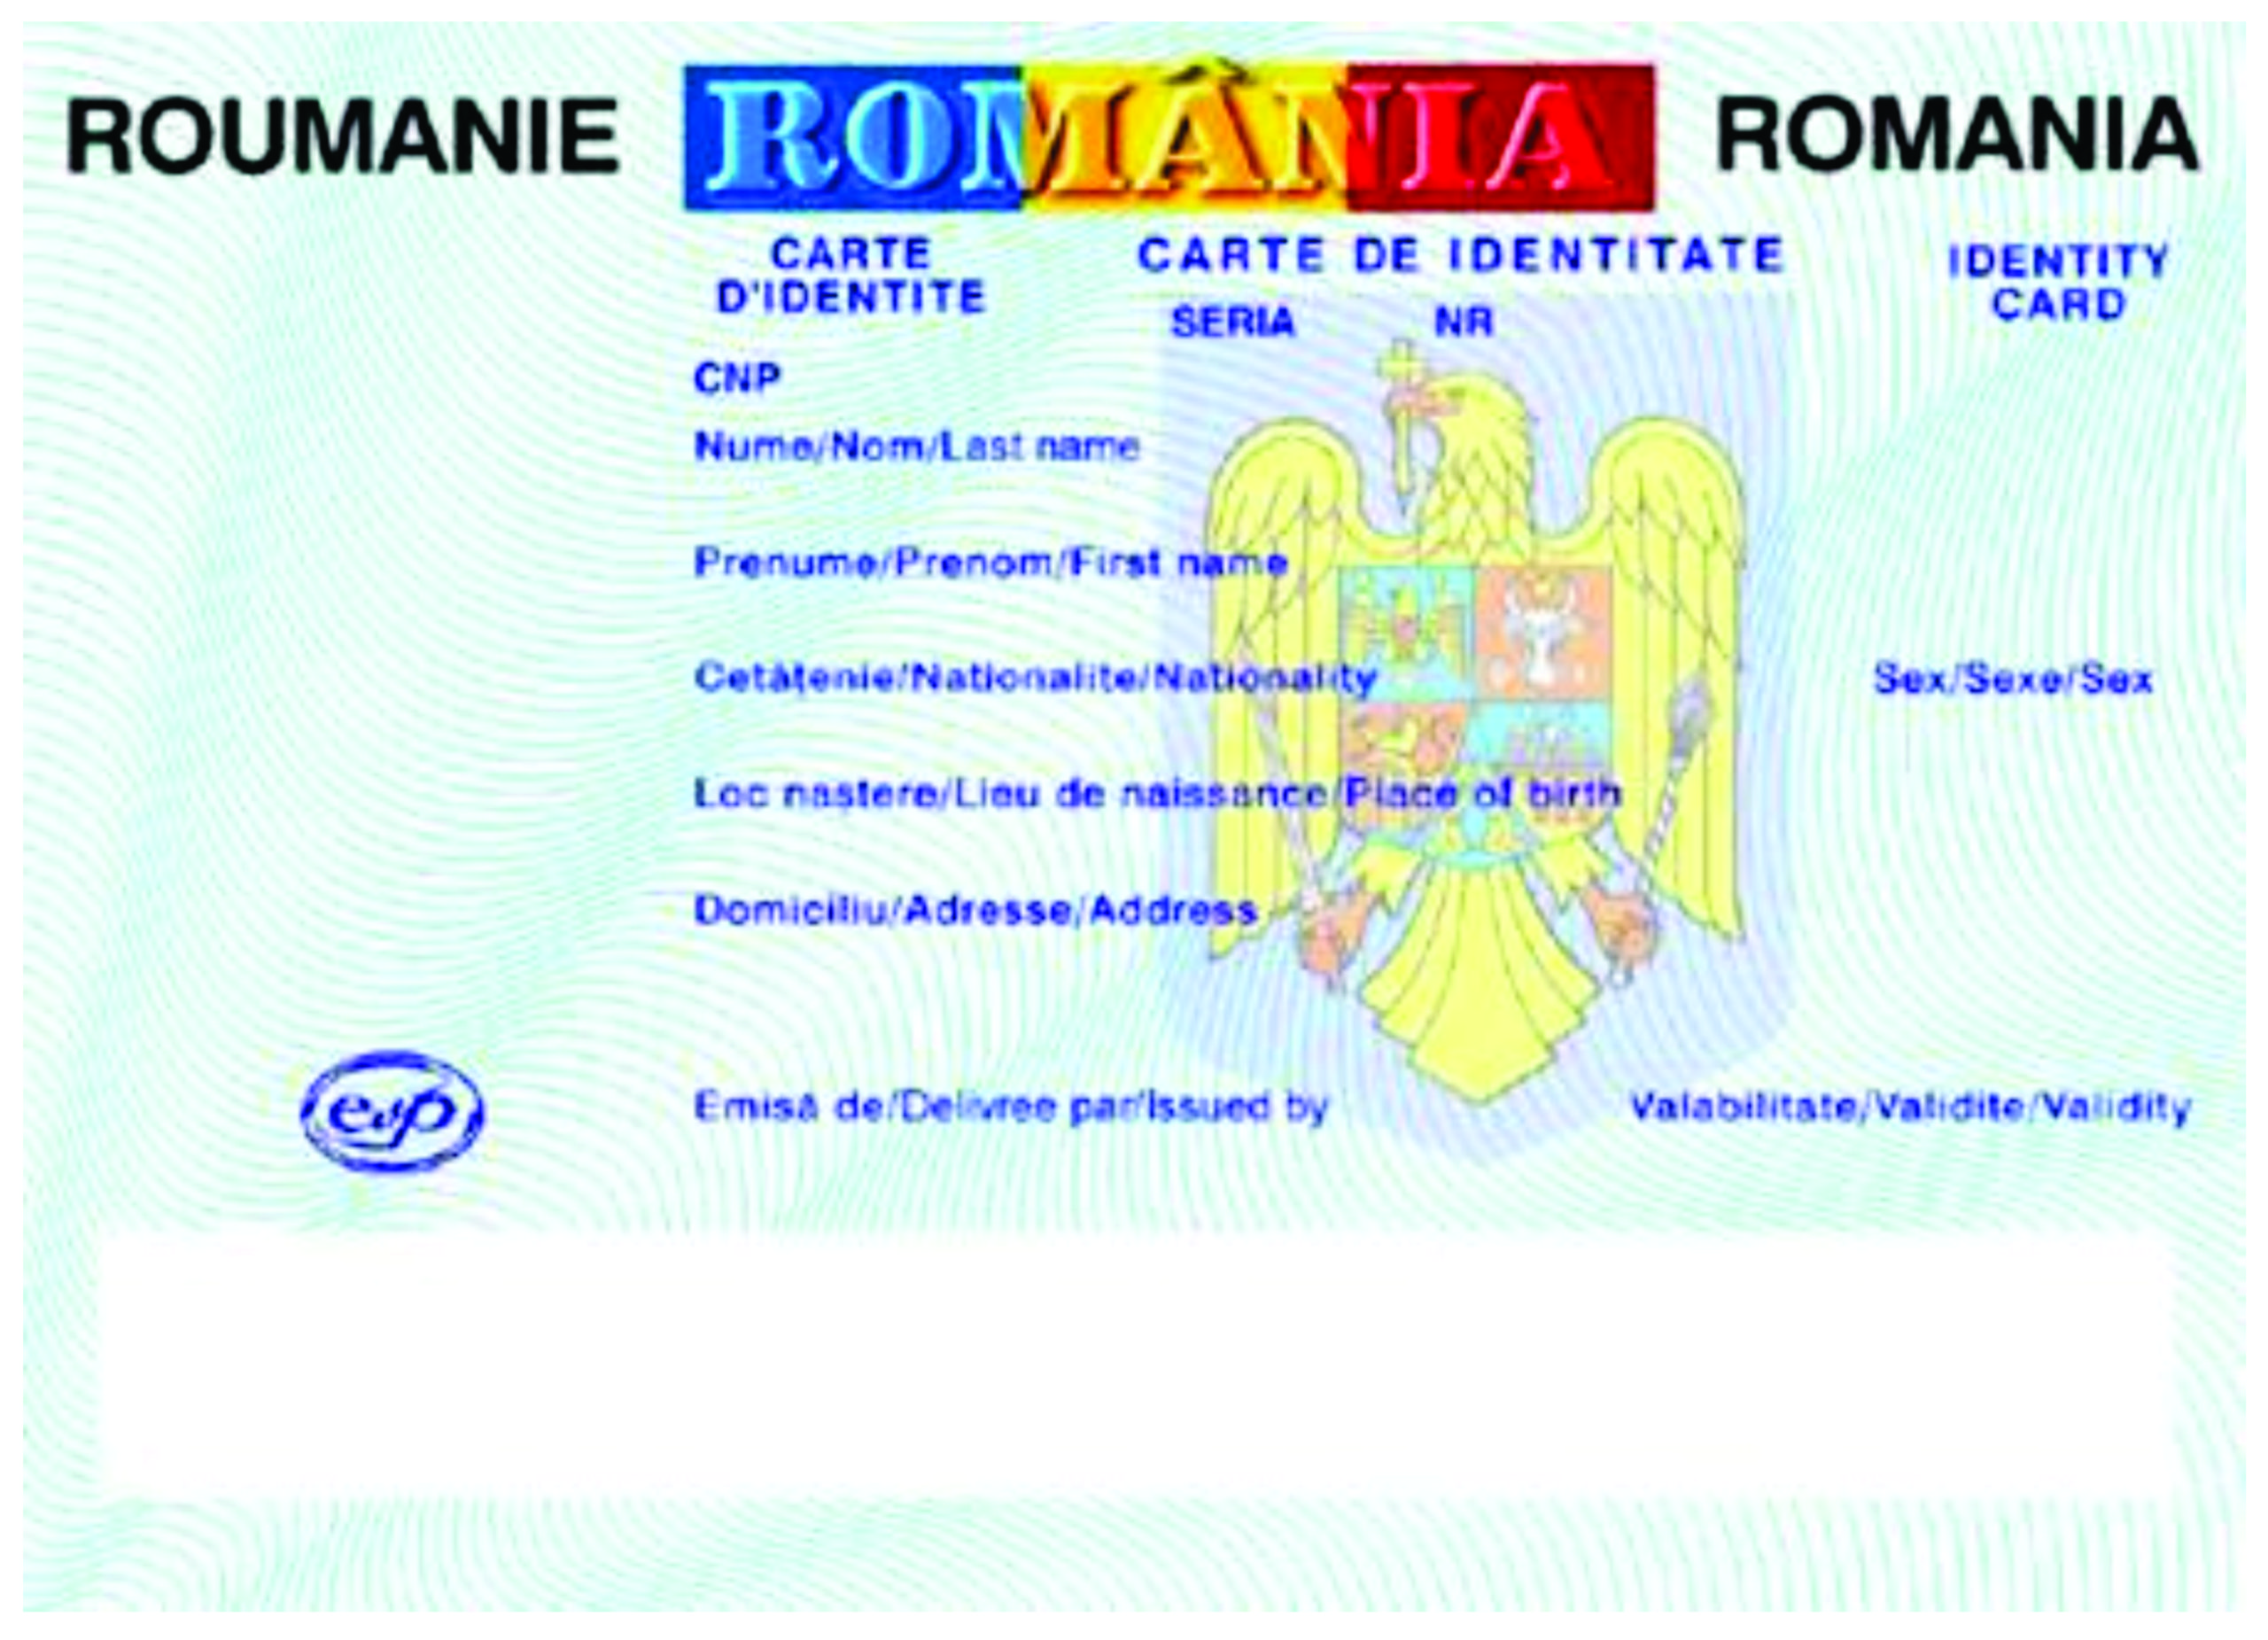 Carte de Identitate (CI) Romania